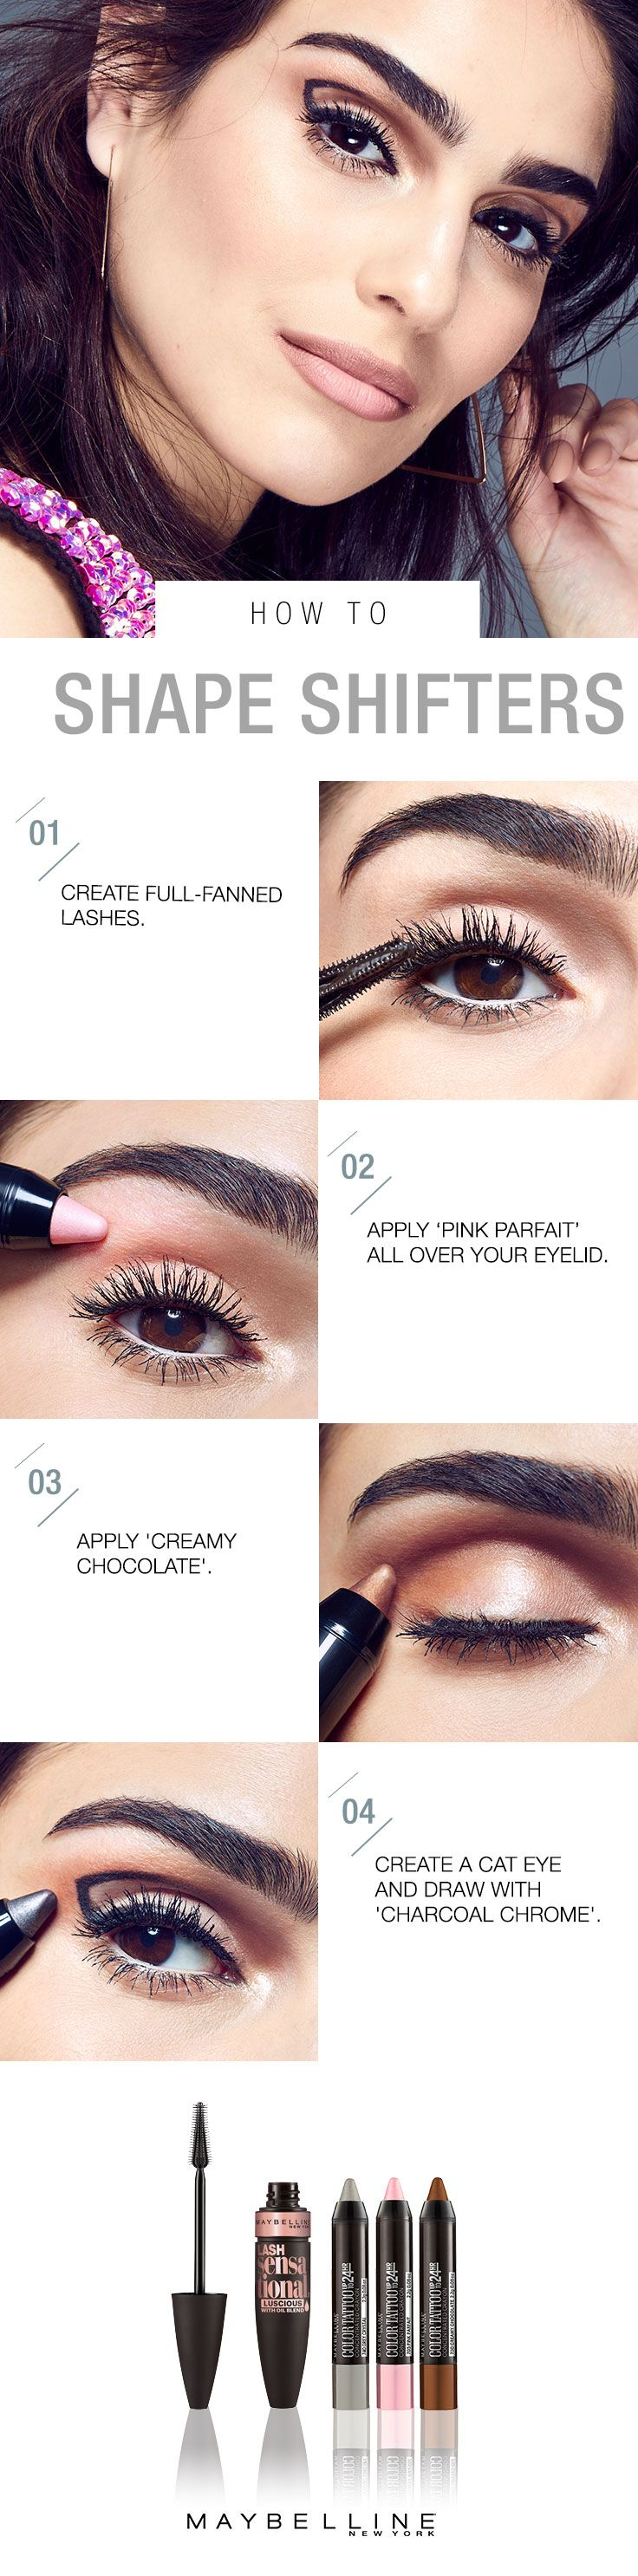 Tips to sensational summer skin - This Summer Kick Off Memorial Day Weekend By Highlighting Your Features Start With Maybelline Lash Sensational Luscious Mascara Infused With Precious Oils